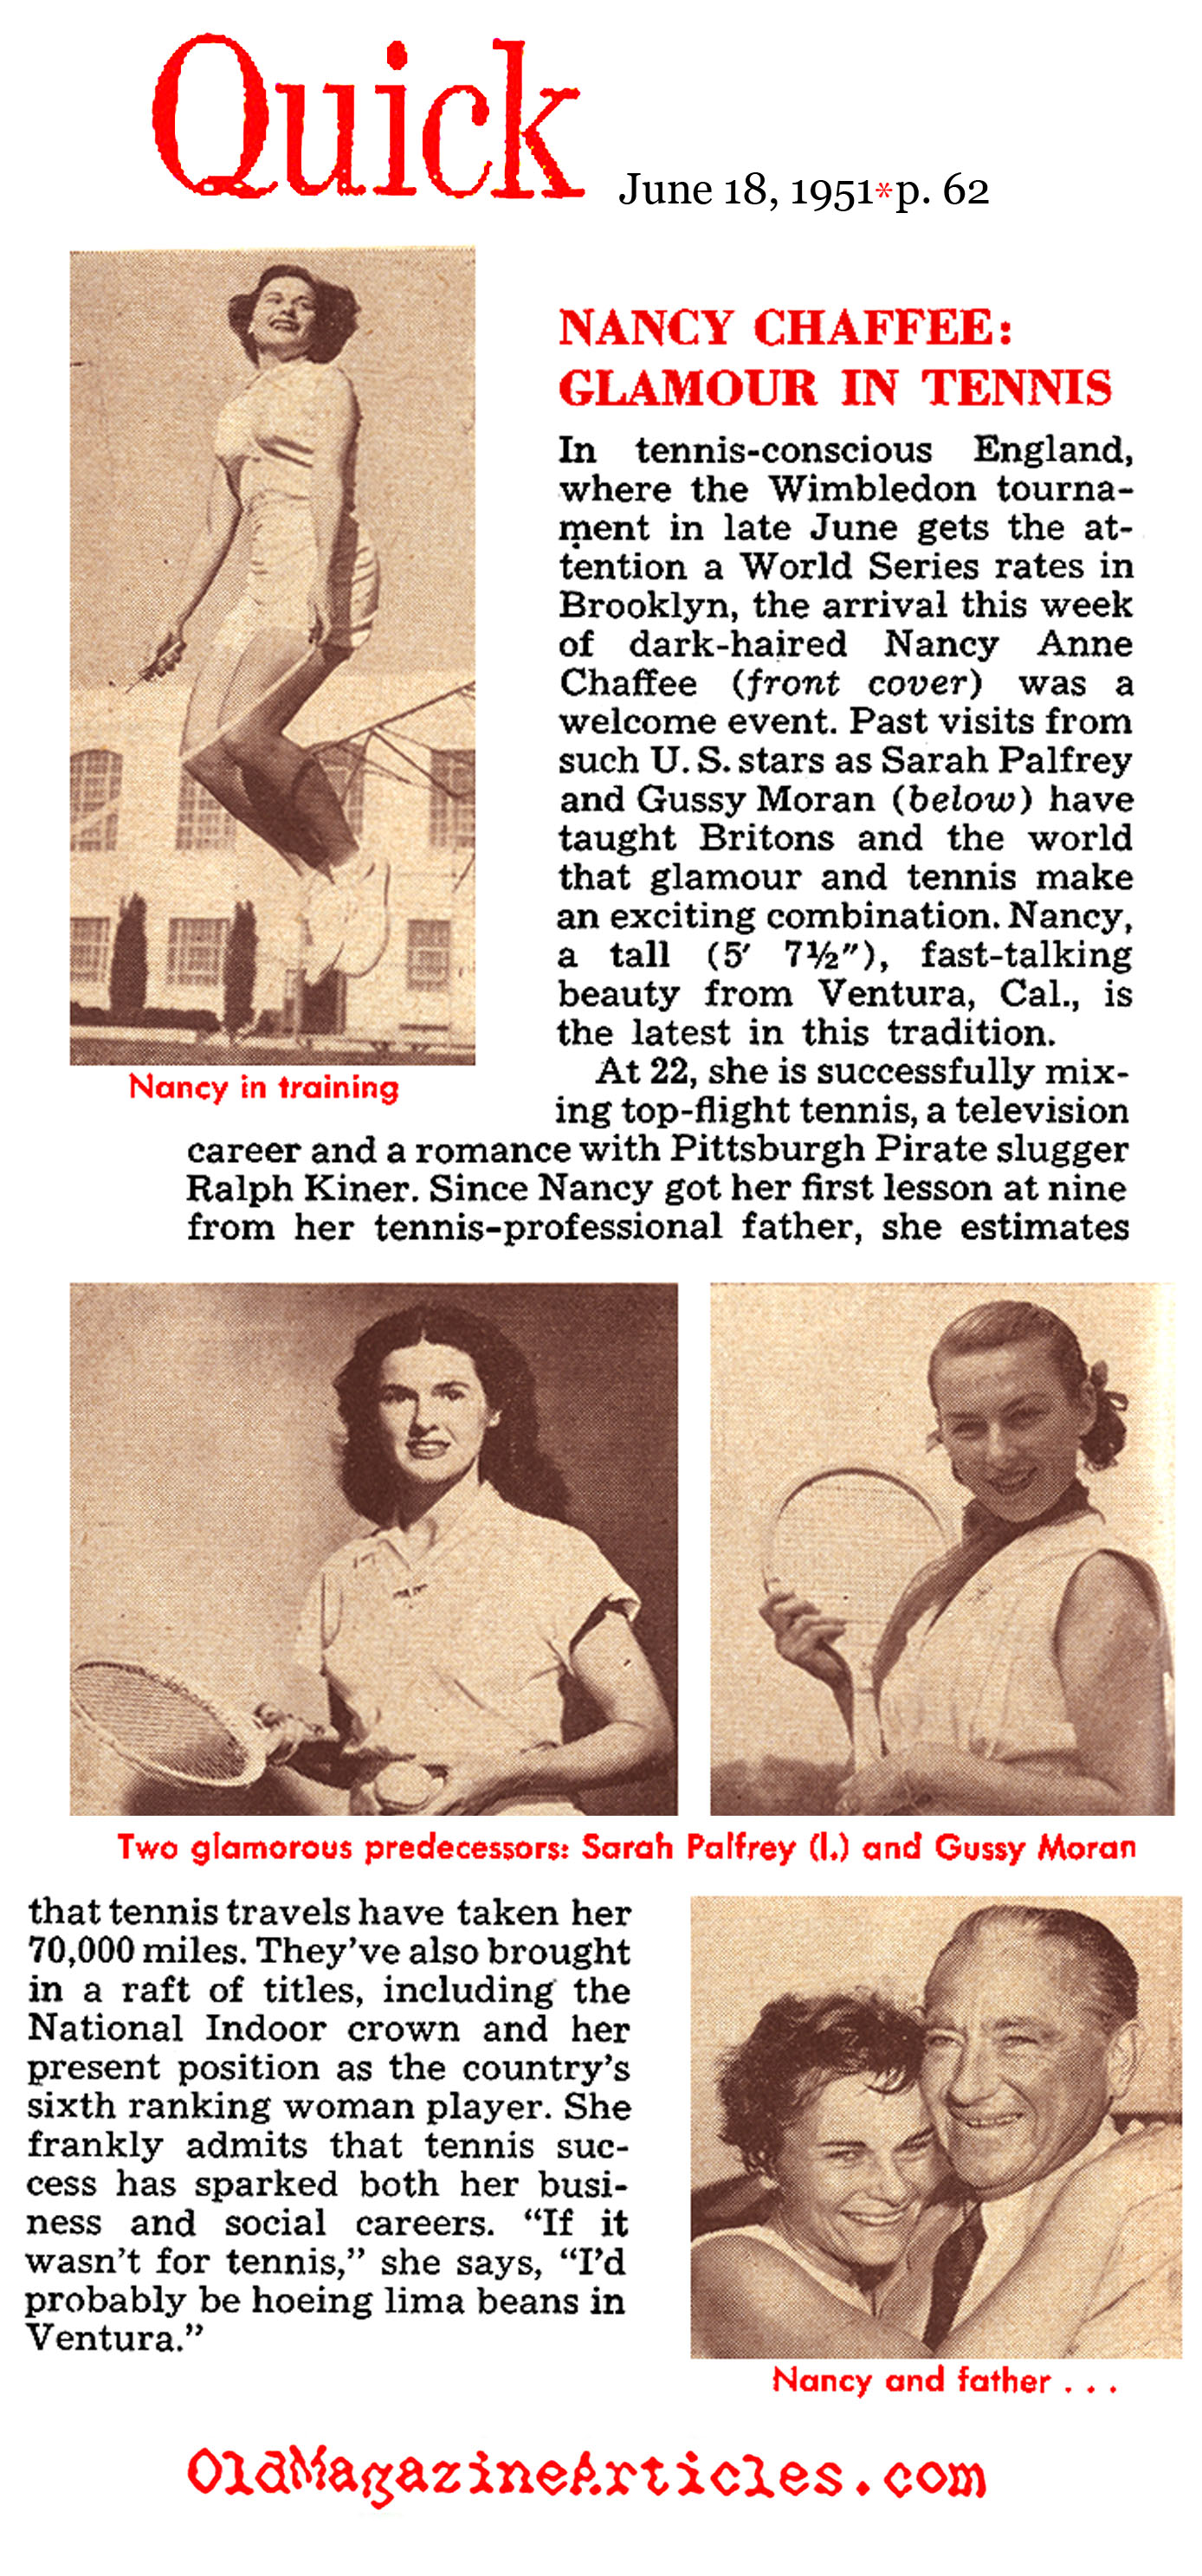 Where Glamour and Tennis Met: Nancy Chaffee (Quick Magazine, 1951)